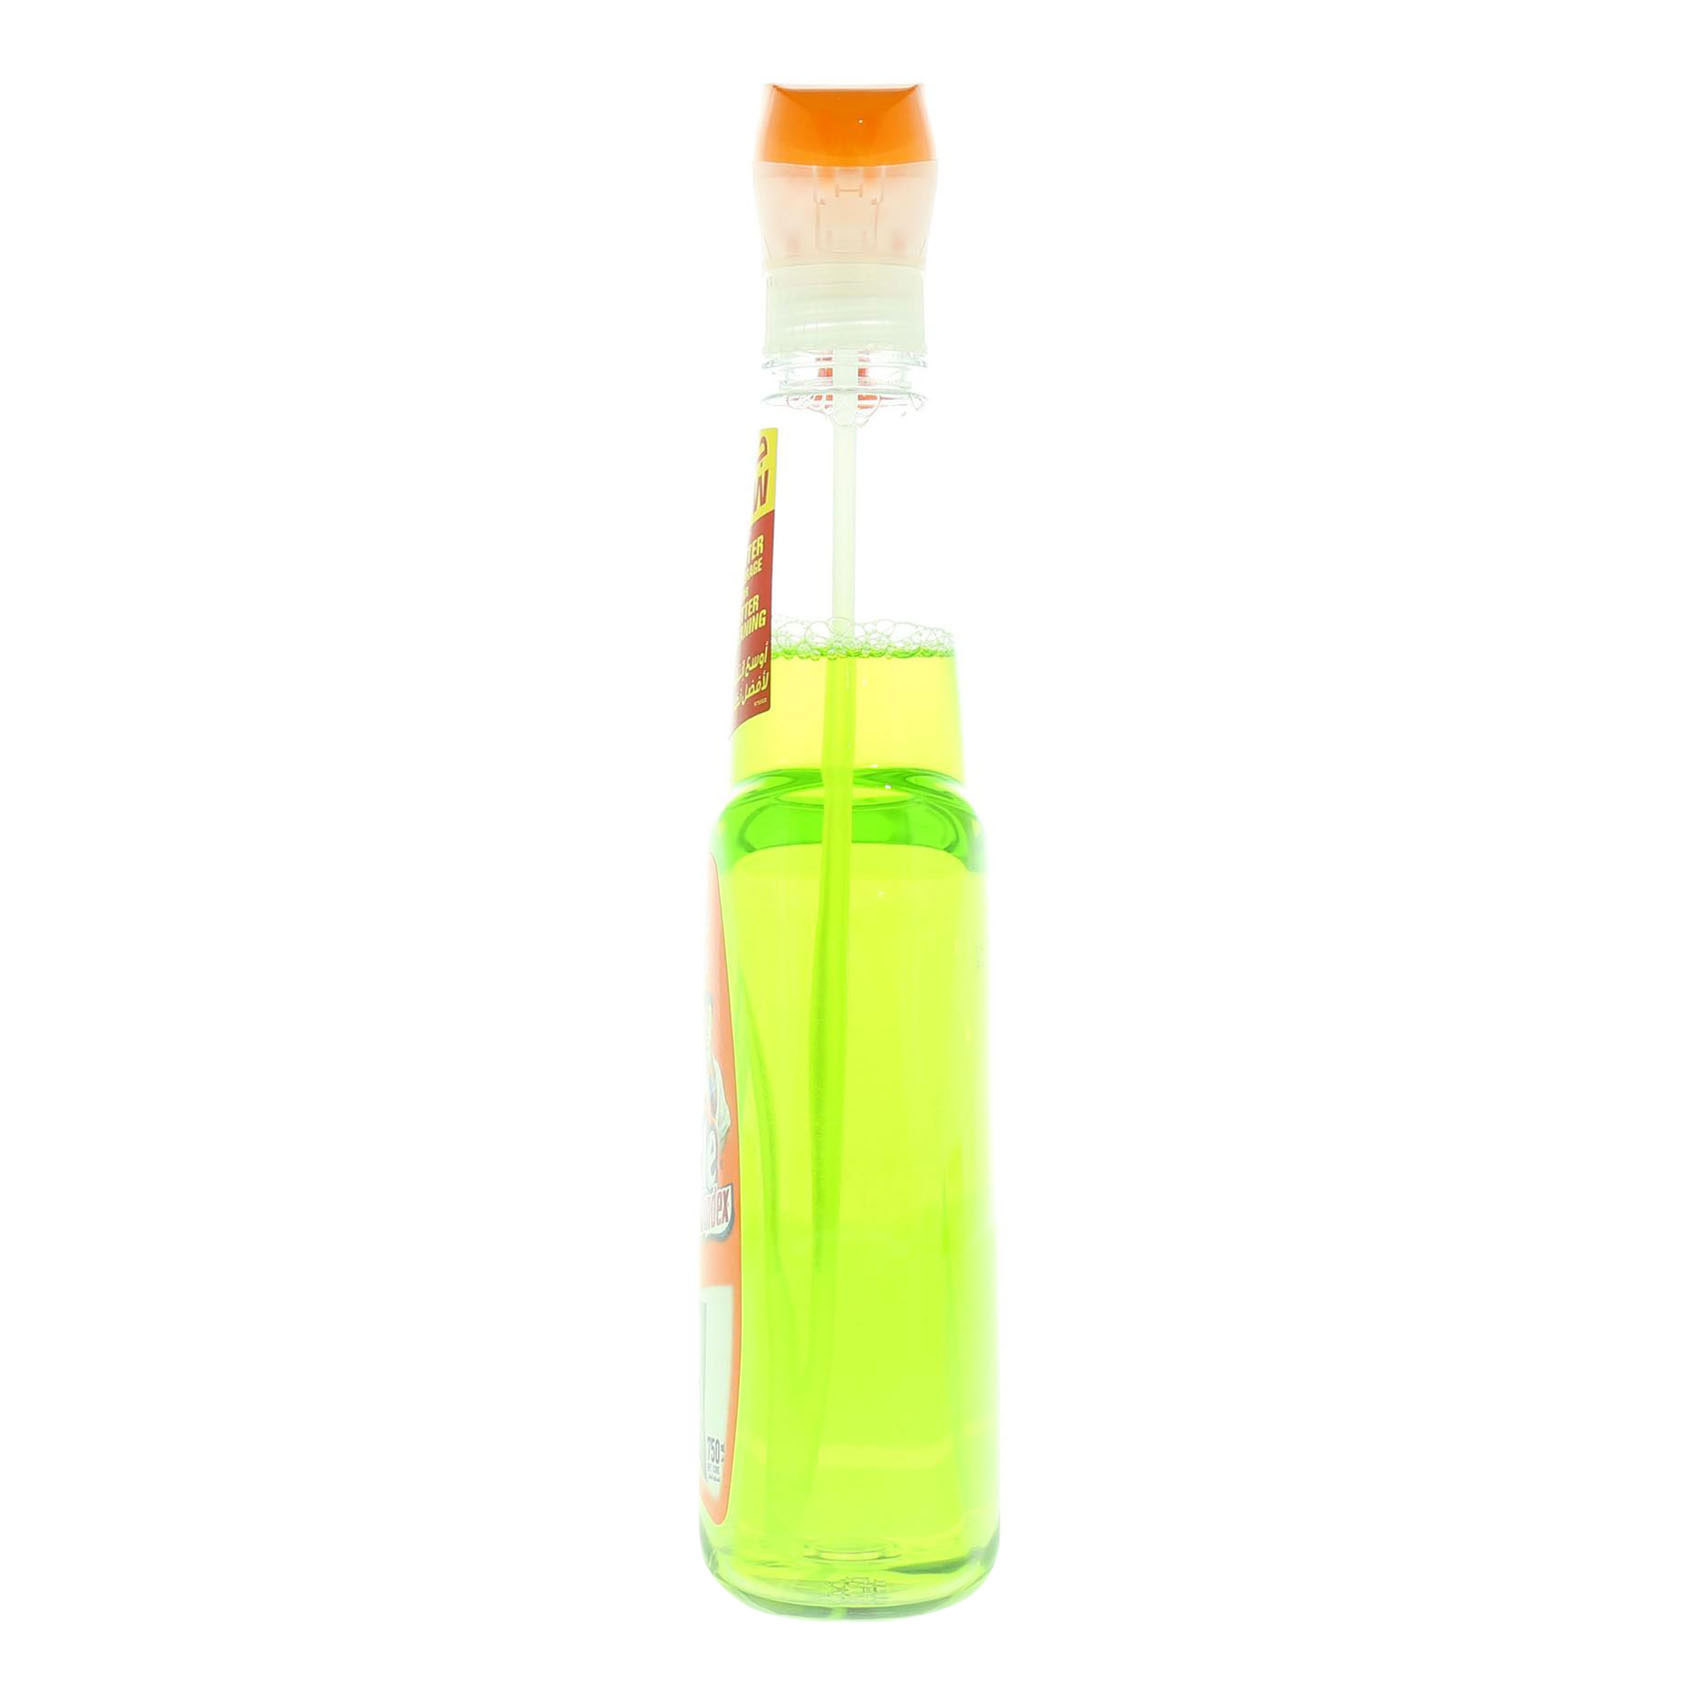 MR.MUSCLE GLASS LIME TRGGR 750ML